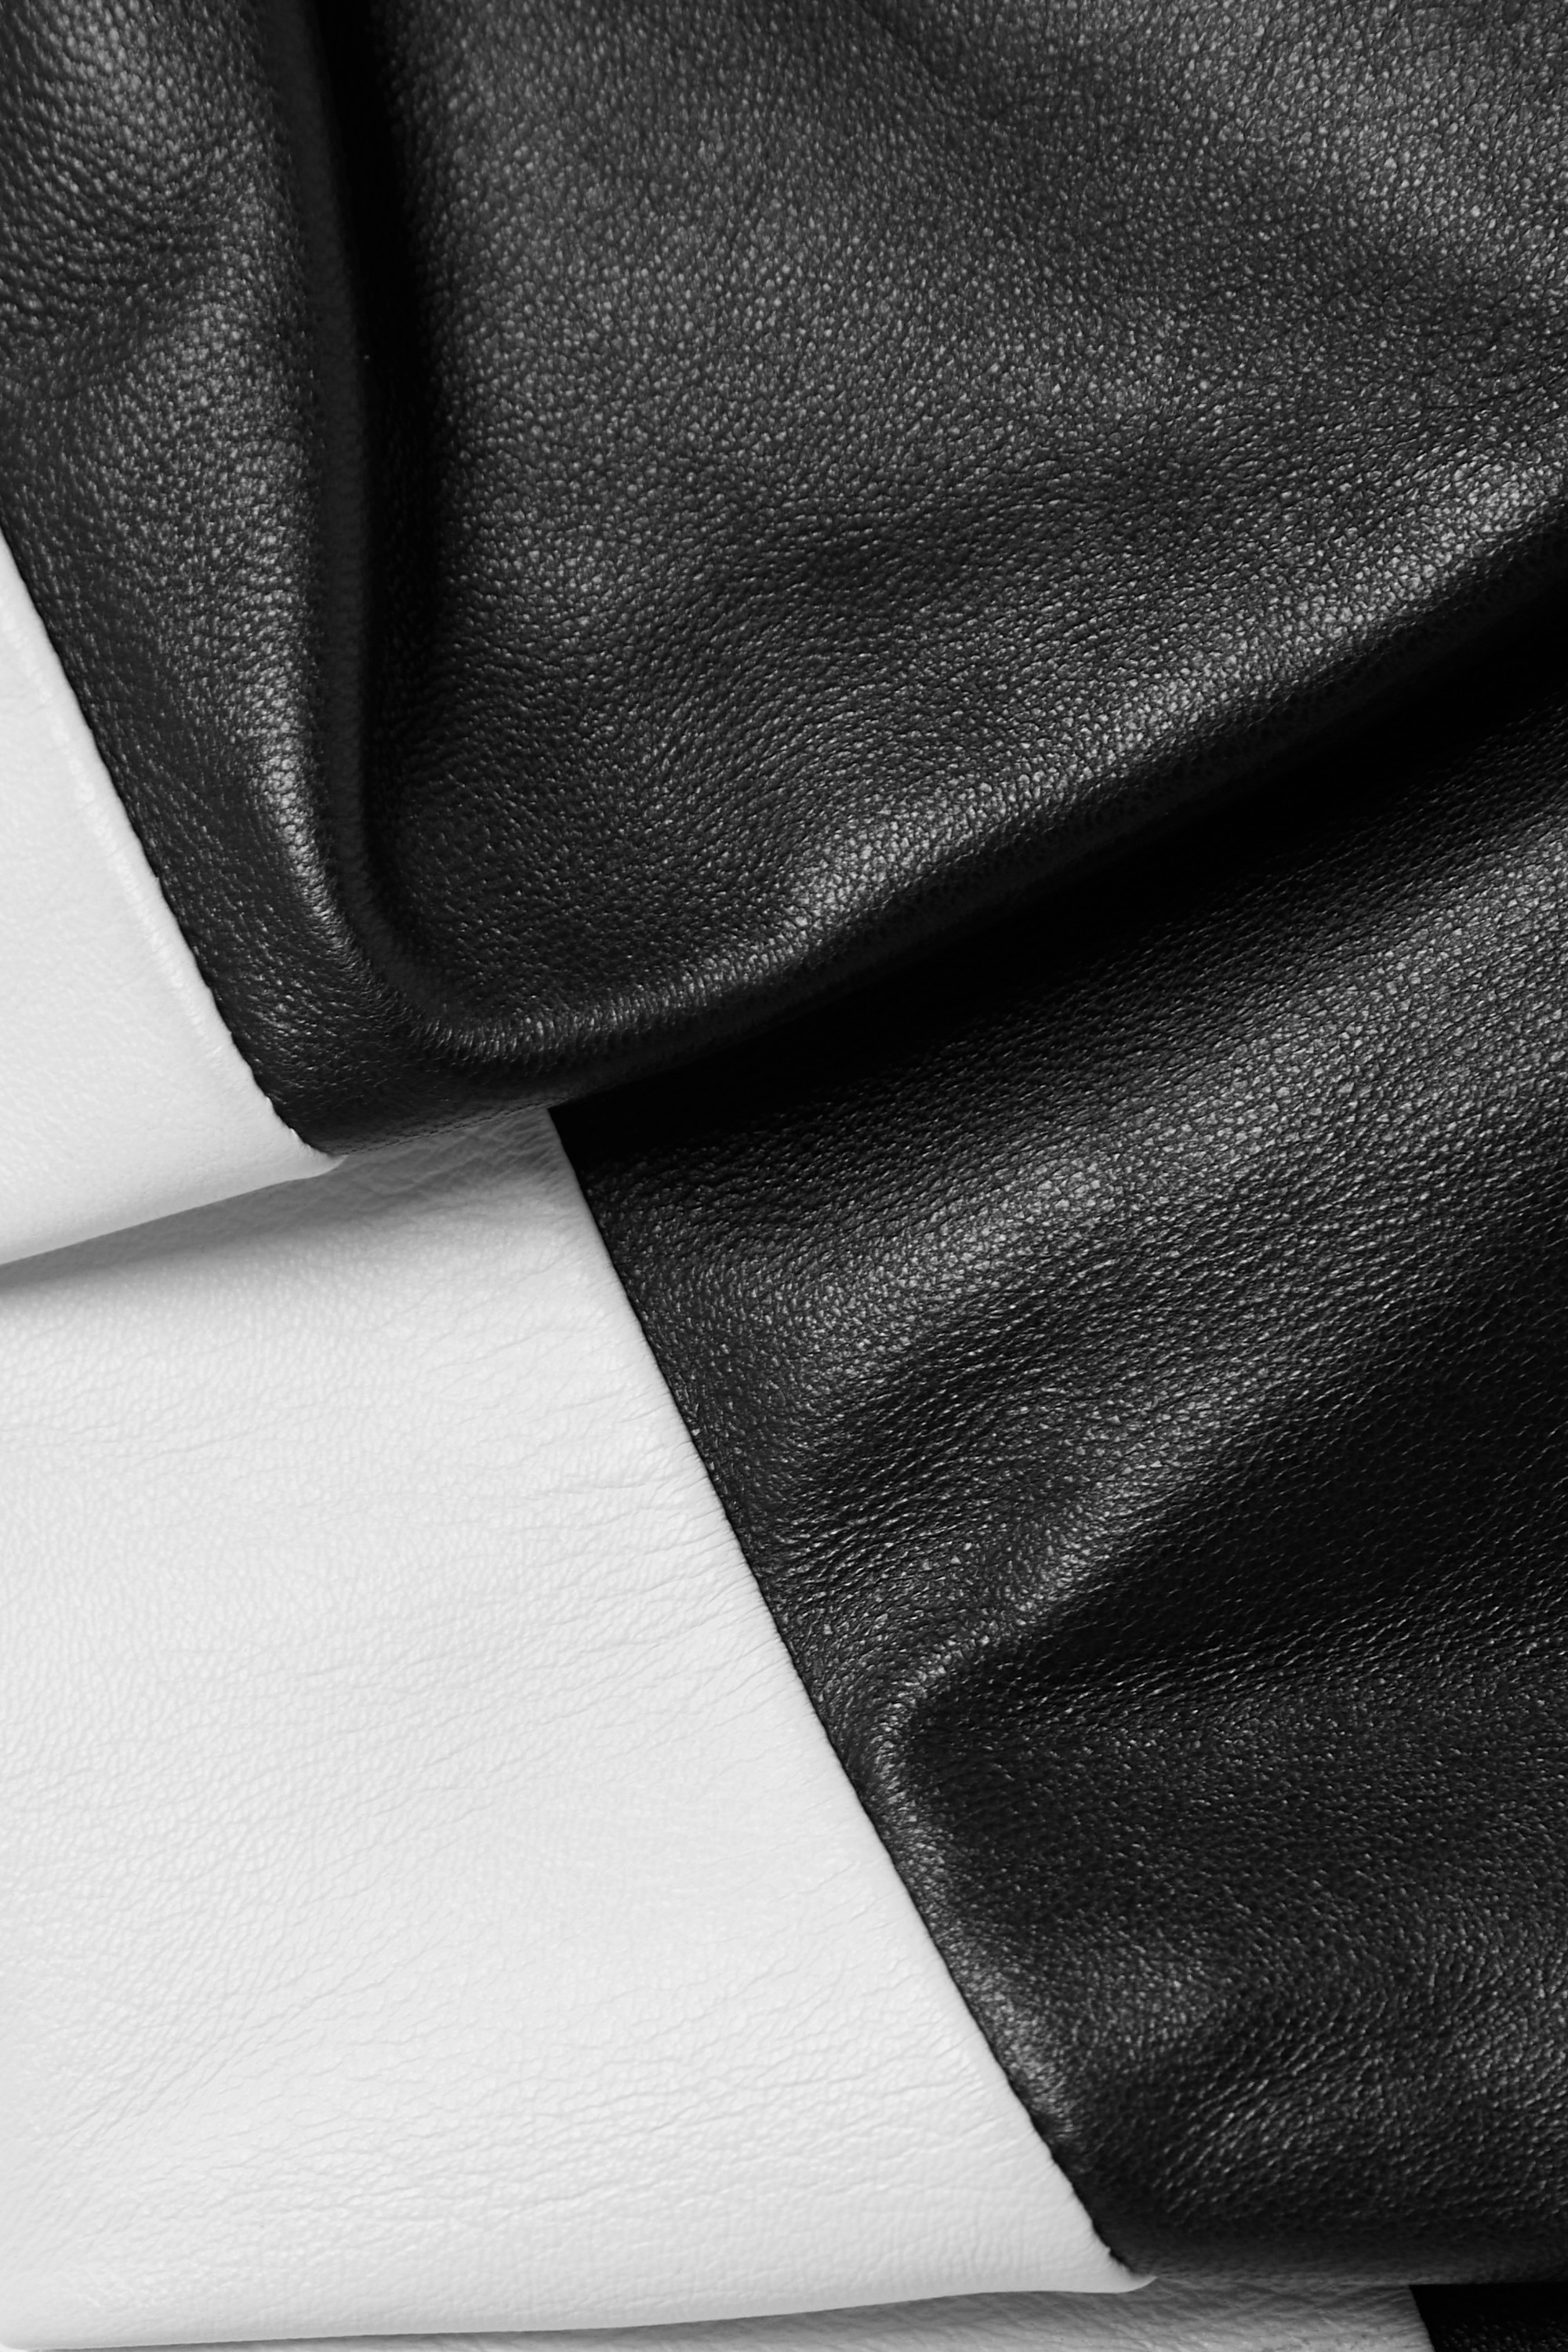 Proenza Schouler Two-tone gathered leather top